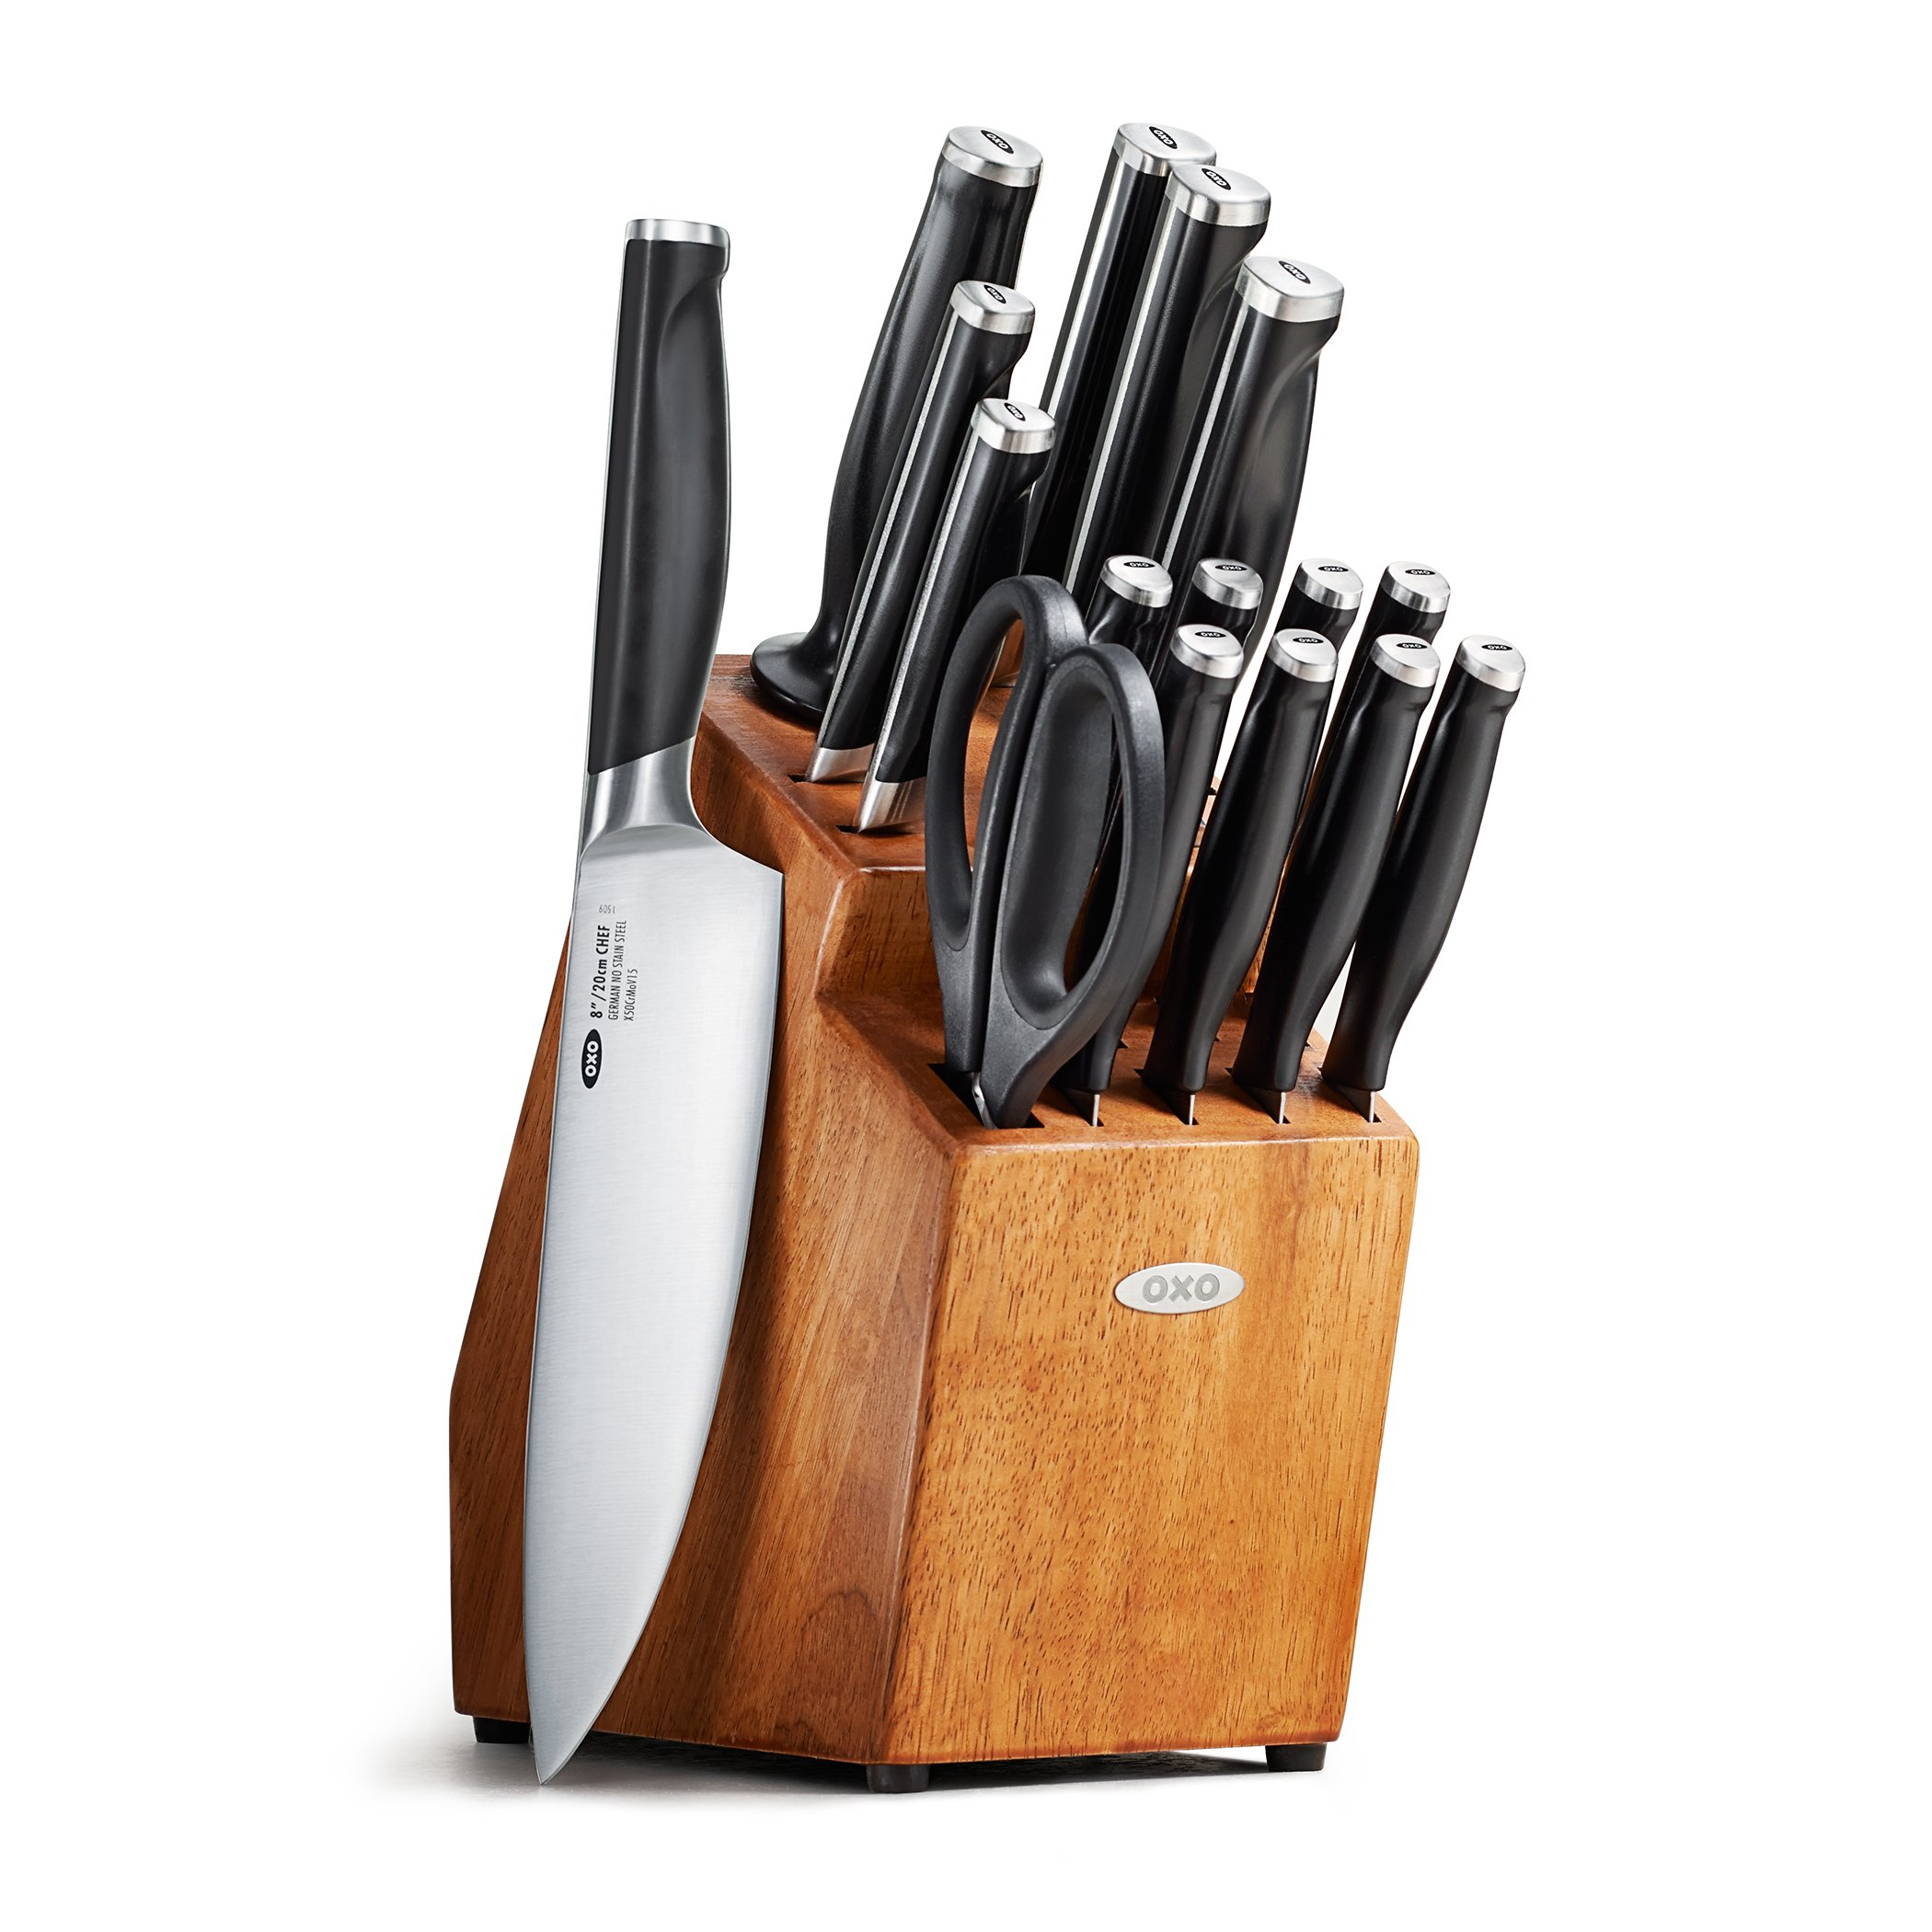 OXO Good Grips 17 Piece Knife Block Set by OXO